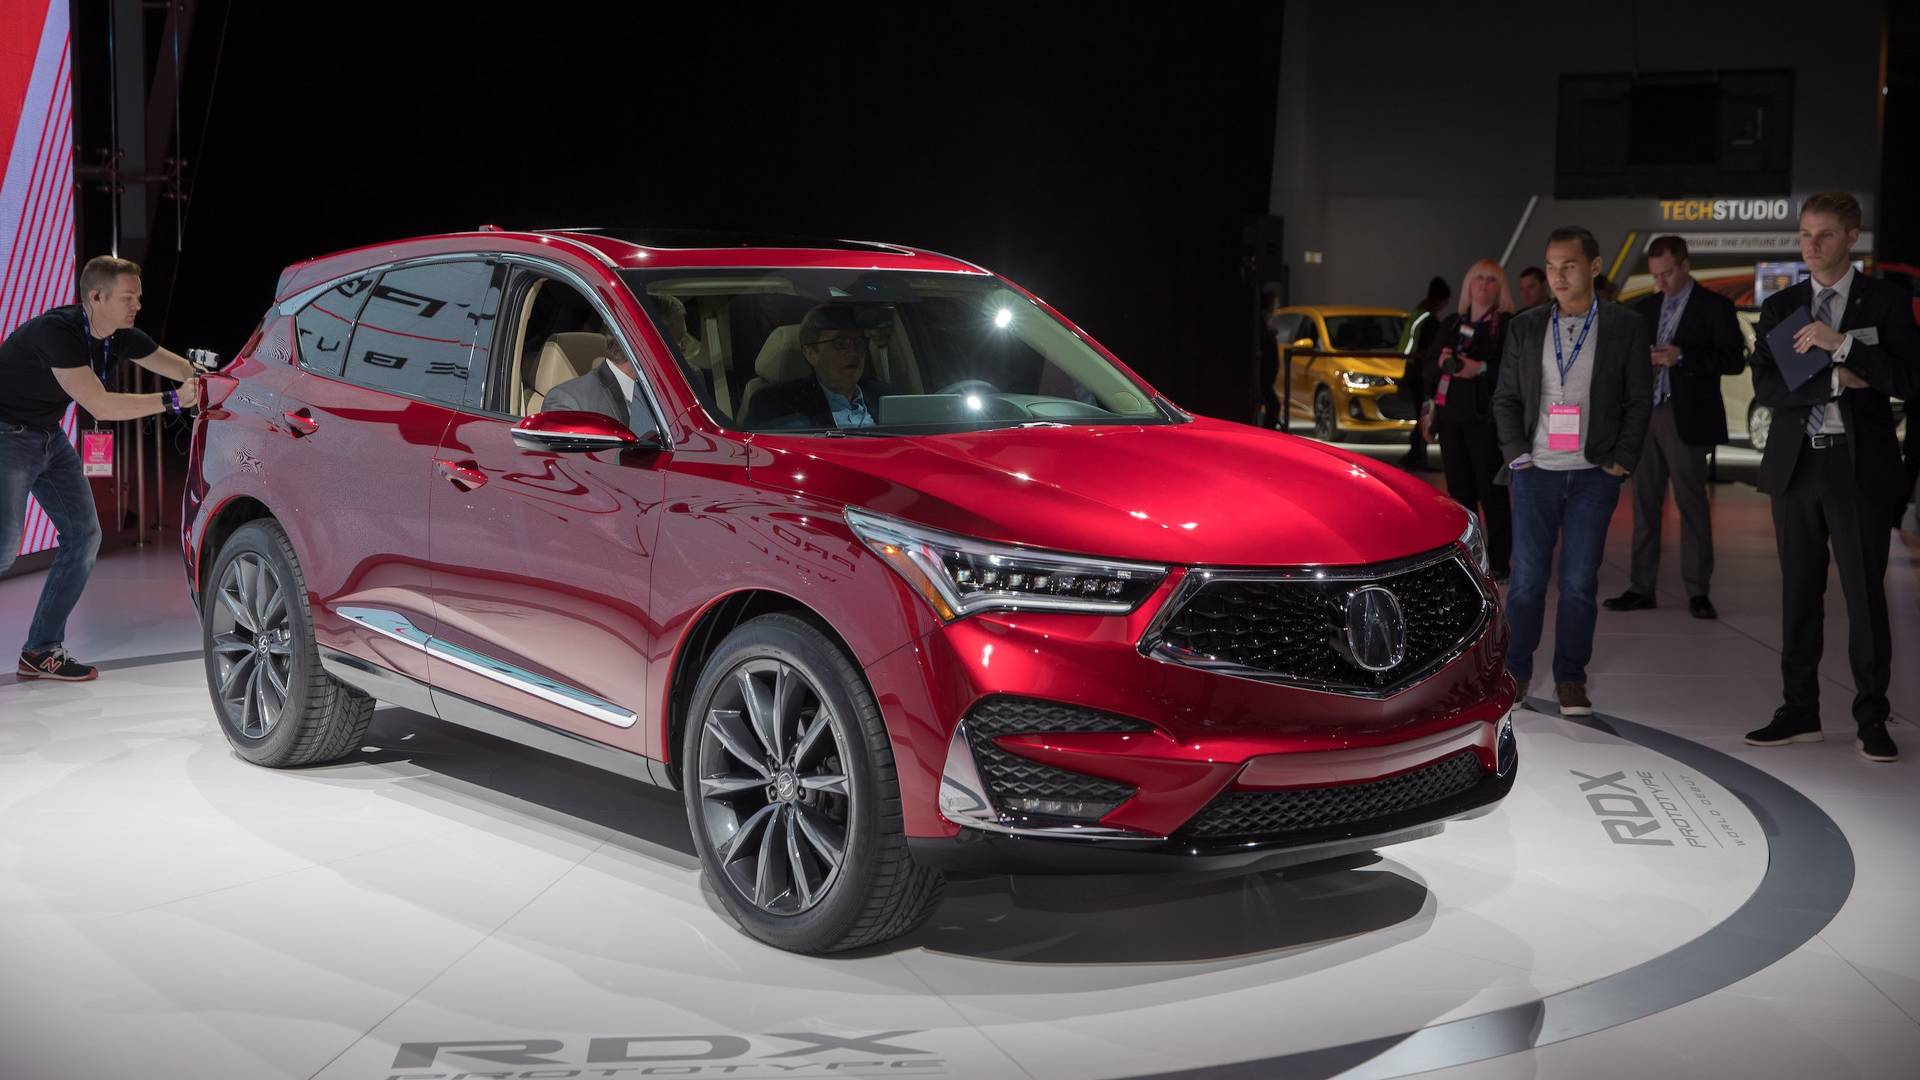 2019 Rdx Acura Release Date | 2018 Cars Models